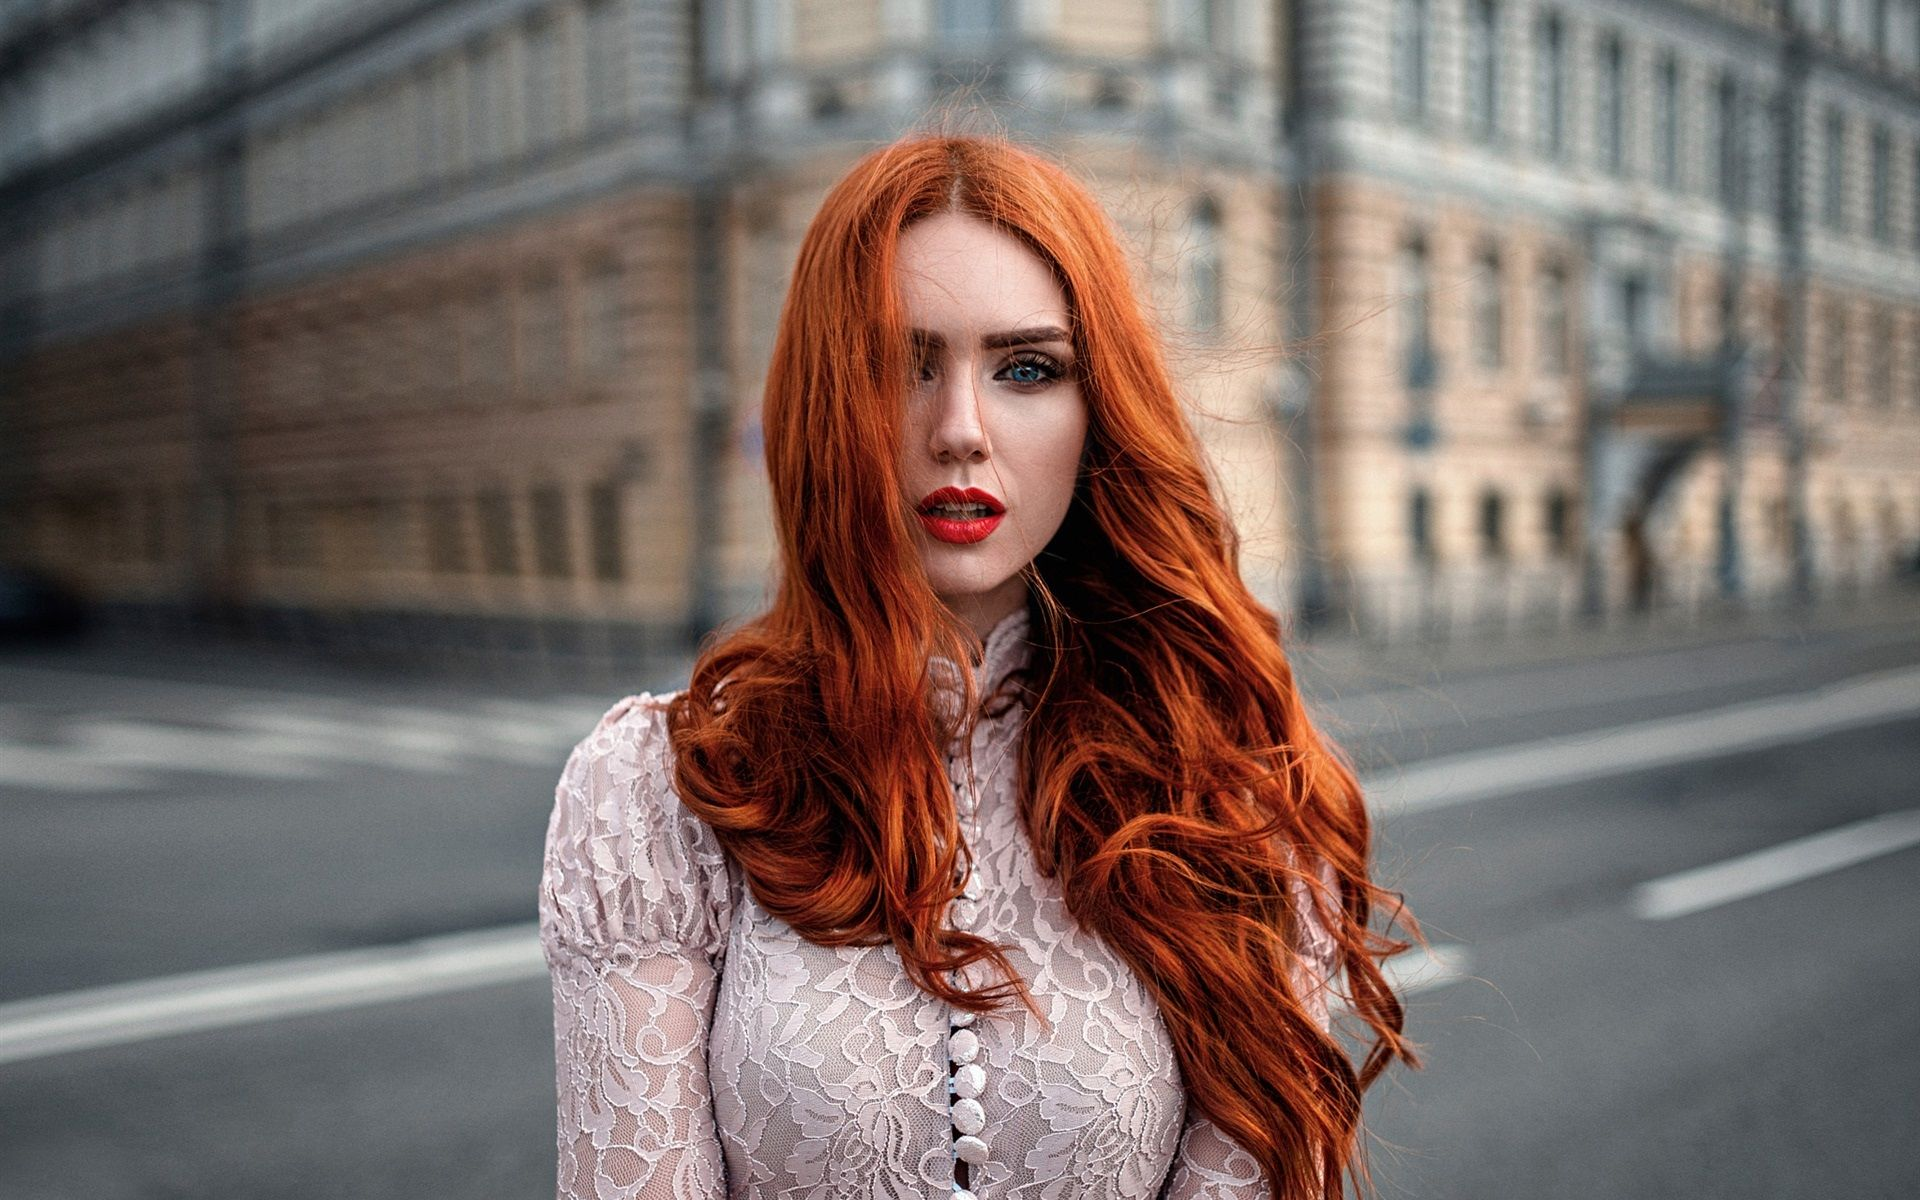 What Are The Most Beautiful Shades Of Red Hair?